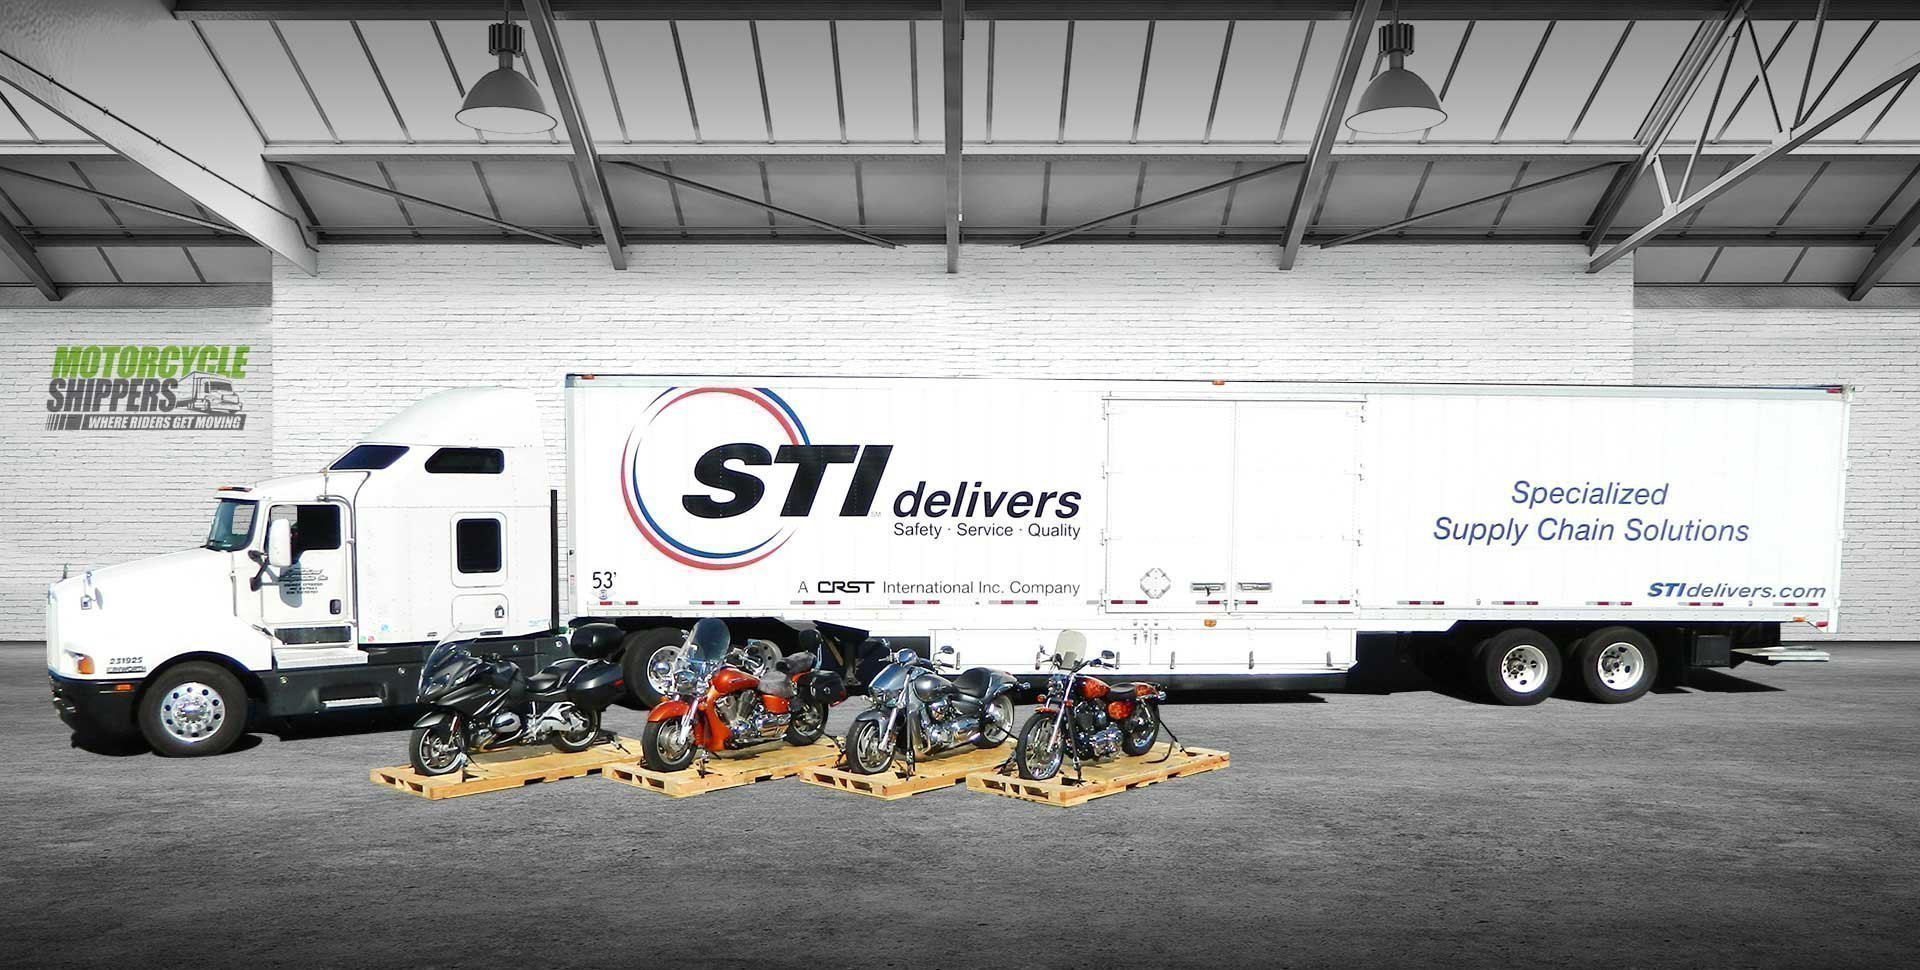 Motorcycle Shipping Truck inside Warehouse with Bikes Prepared for Transport